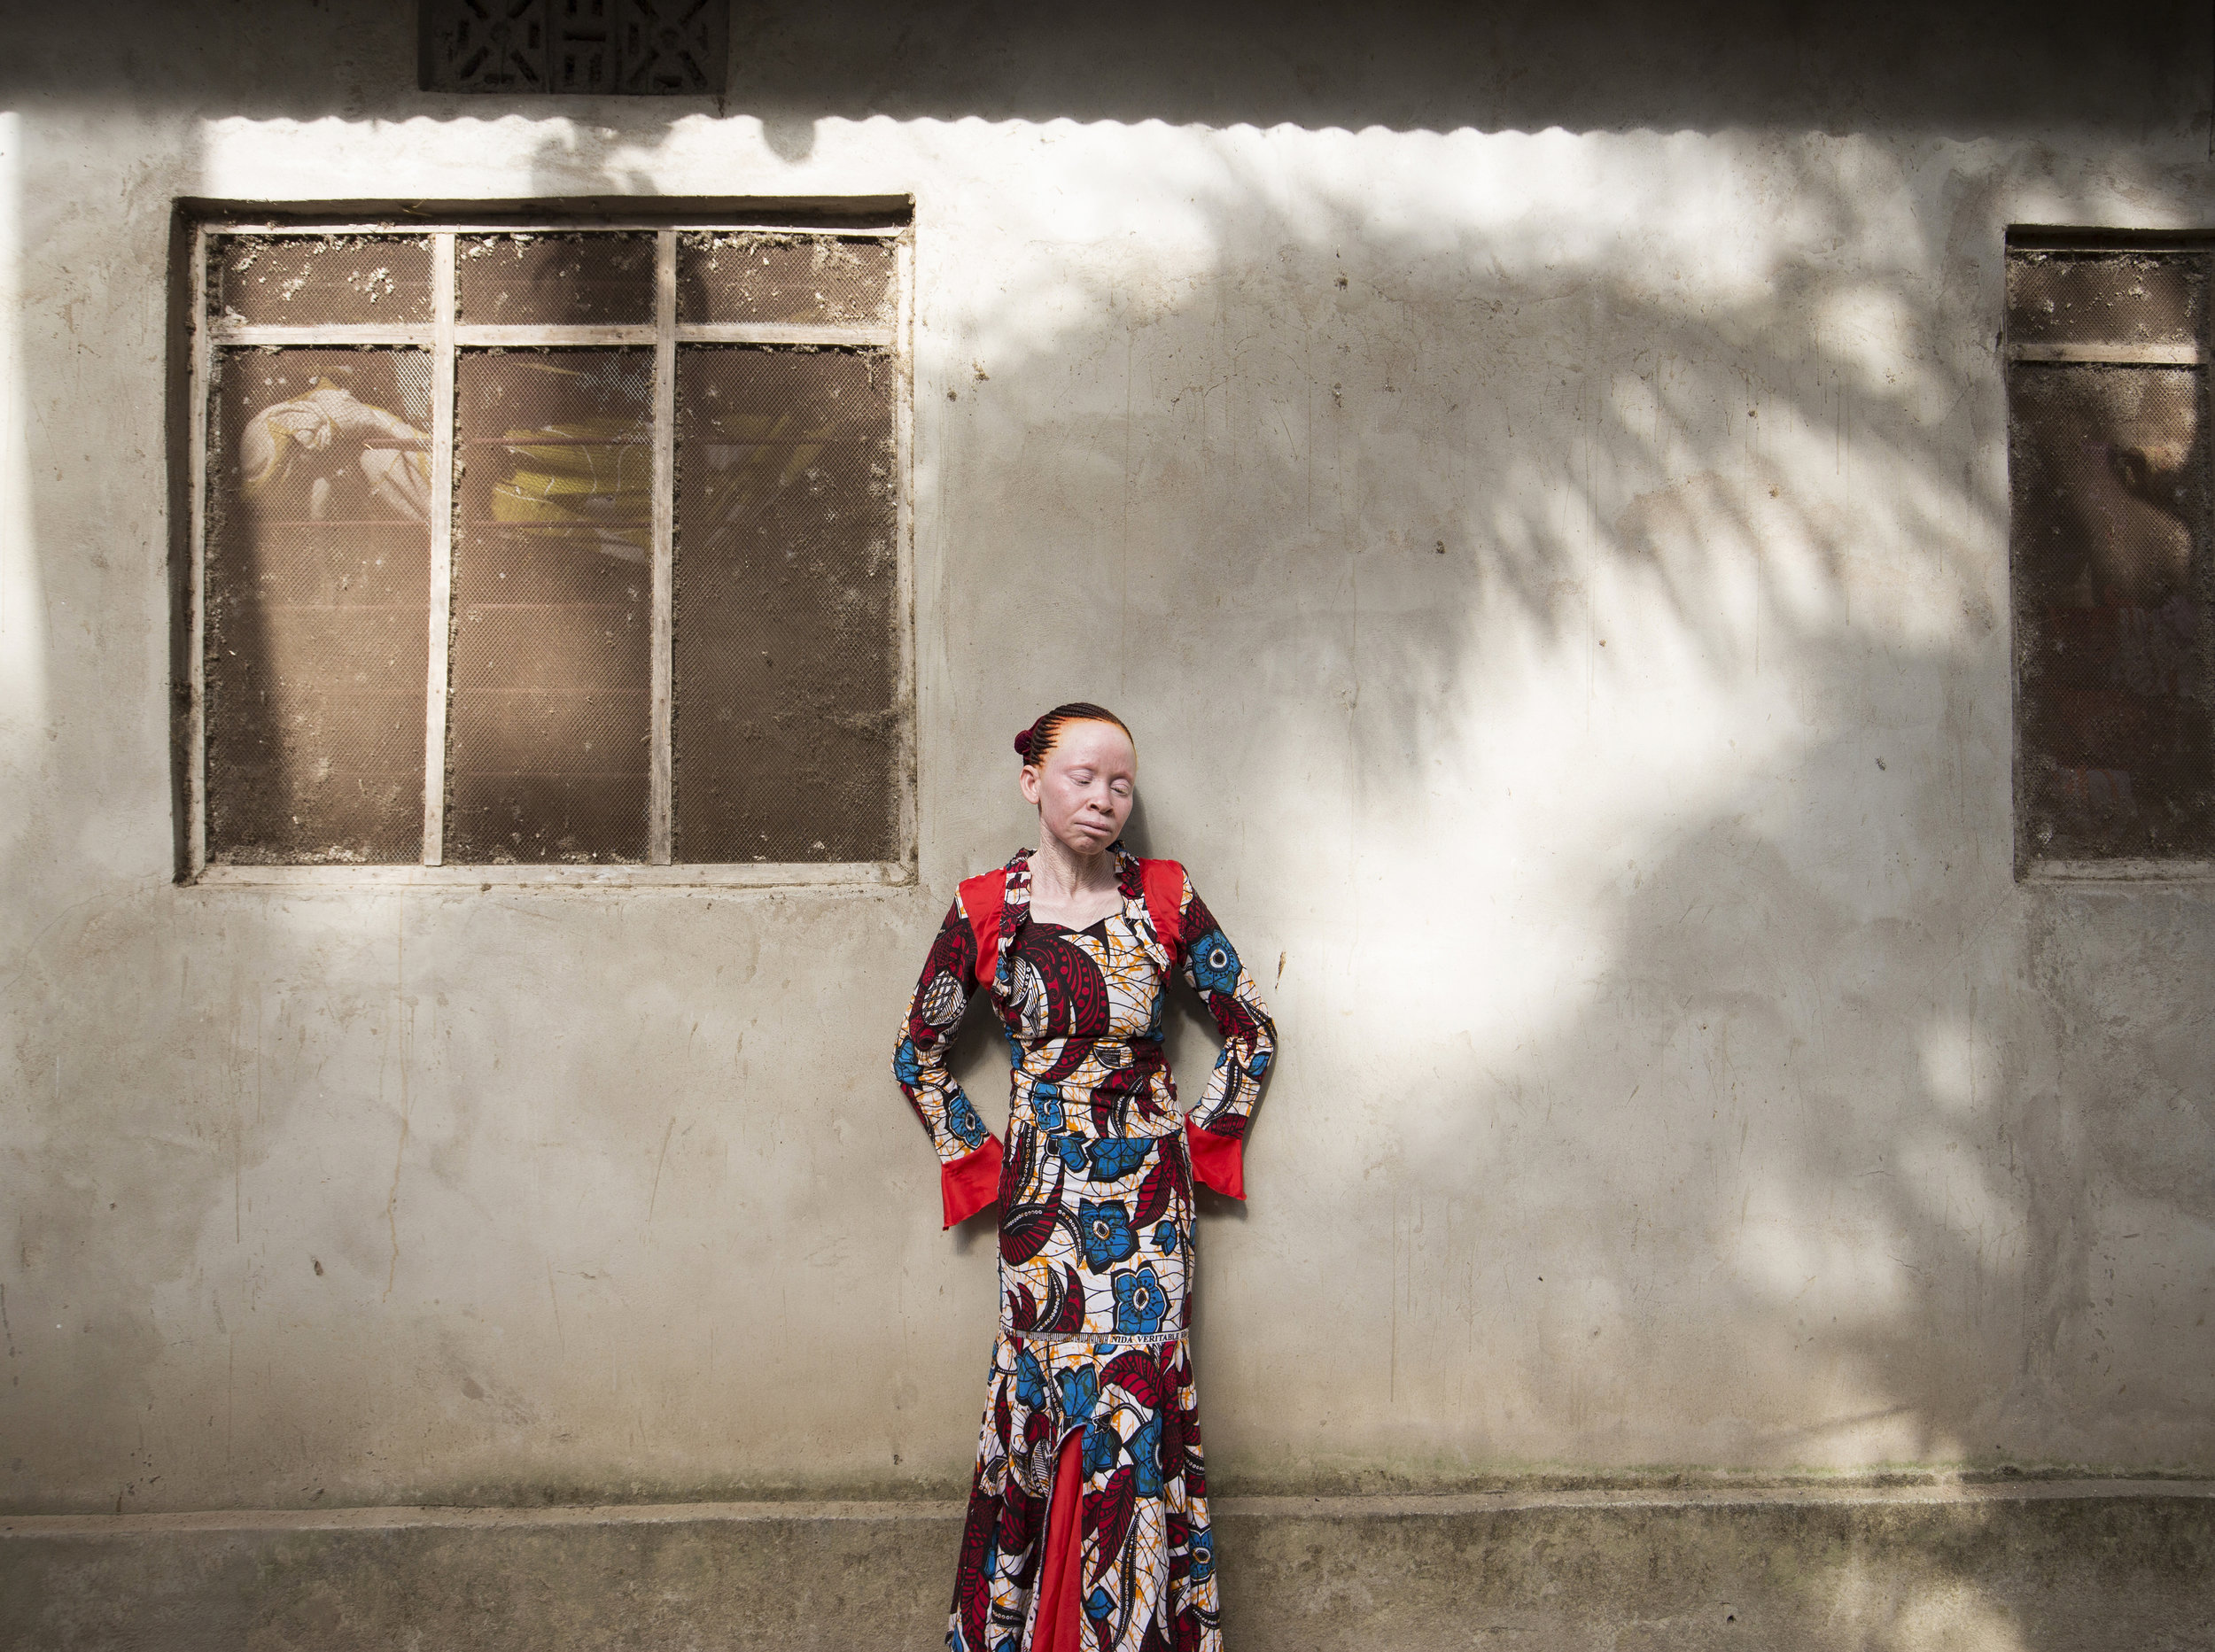 The bodies of people with albinism are frequently said to possess magical properties, able to cure disease or deliver fortune. Sex with a woman with albinism is thought to cure AIDS which in some communities leads to rape.